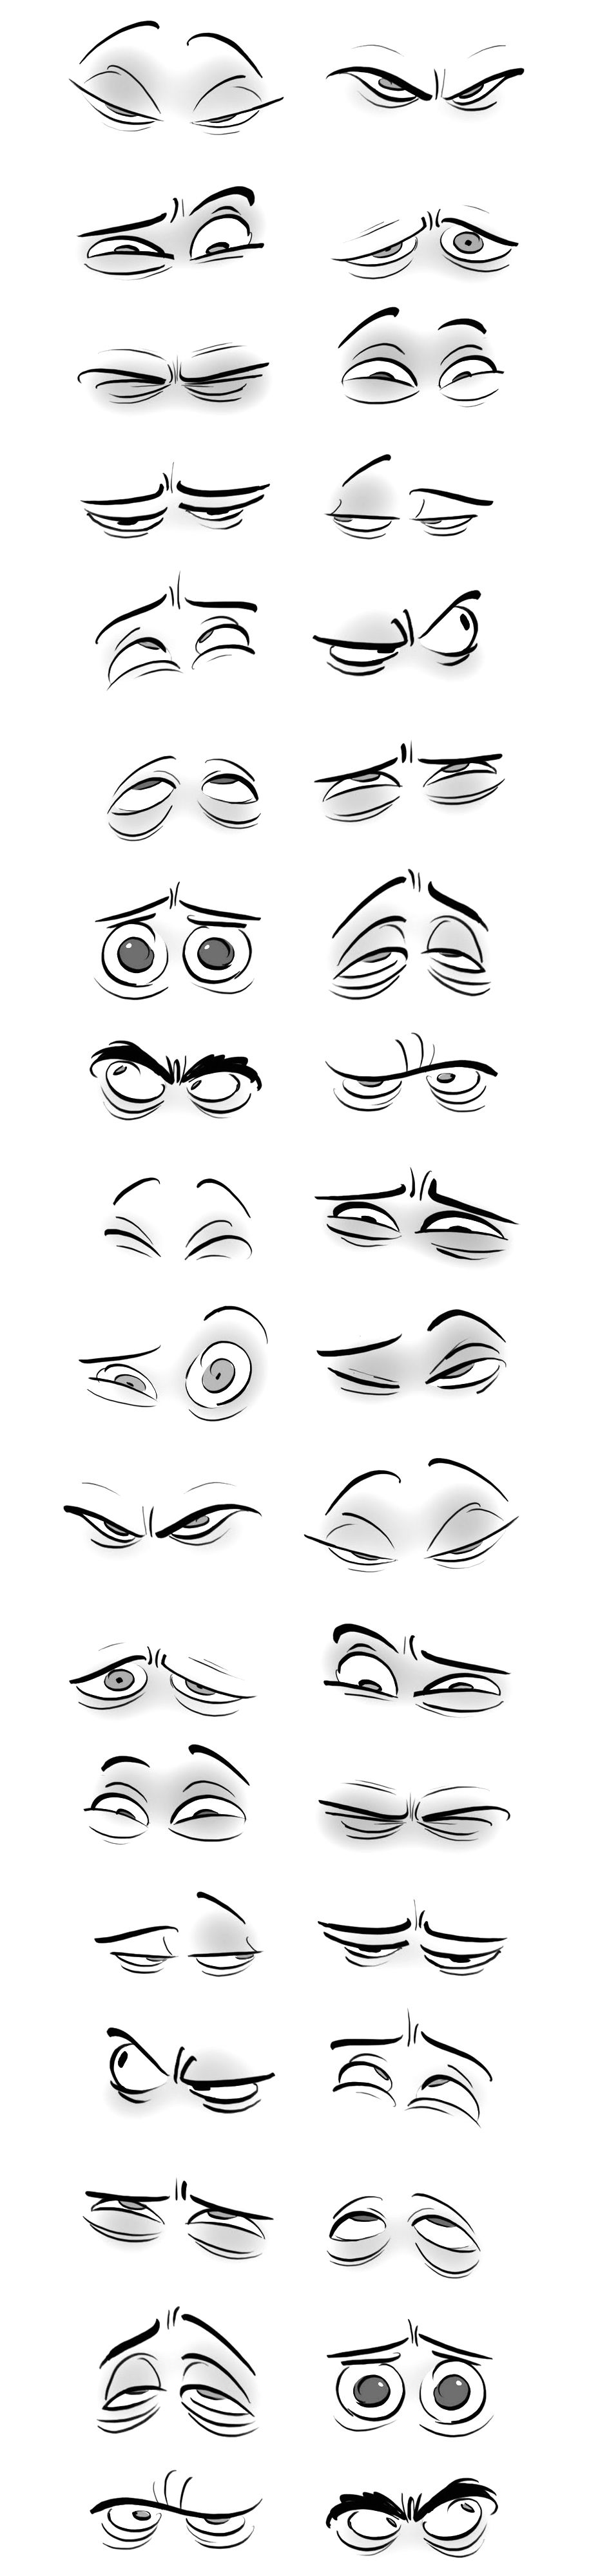 €�i Only Have Eyes For You €� Drawing Exercise Art Drawing Tips  By Toby